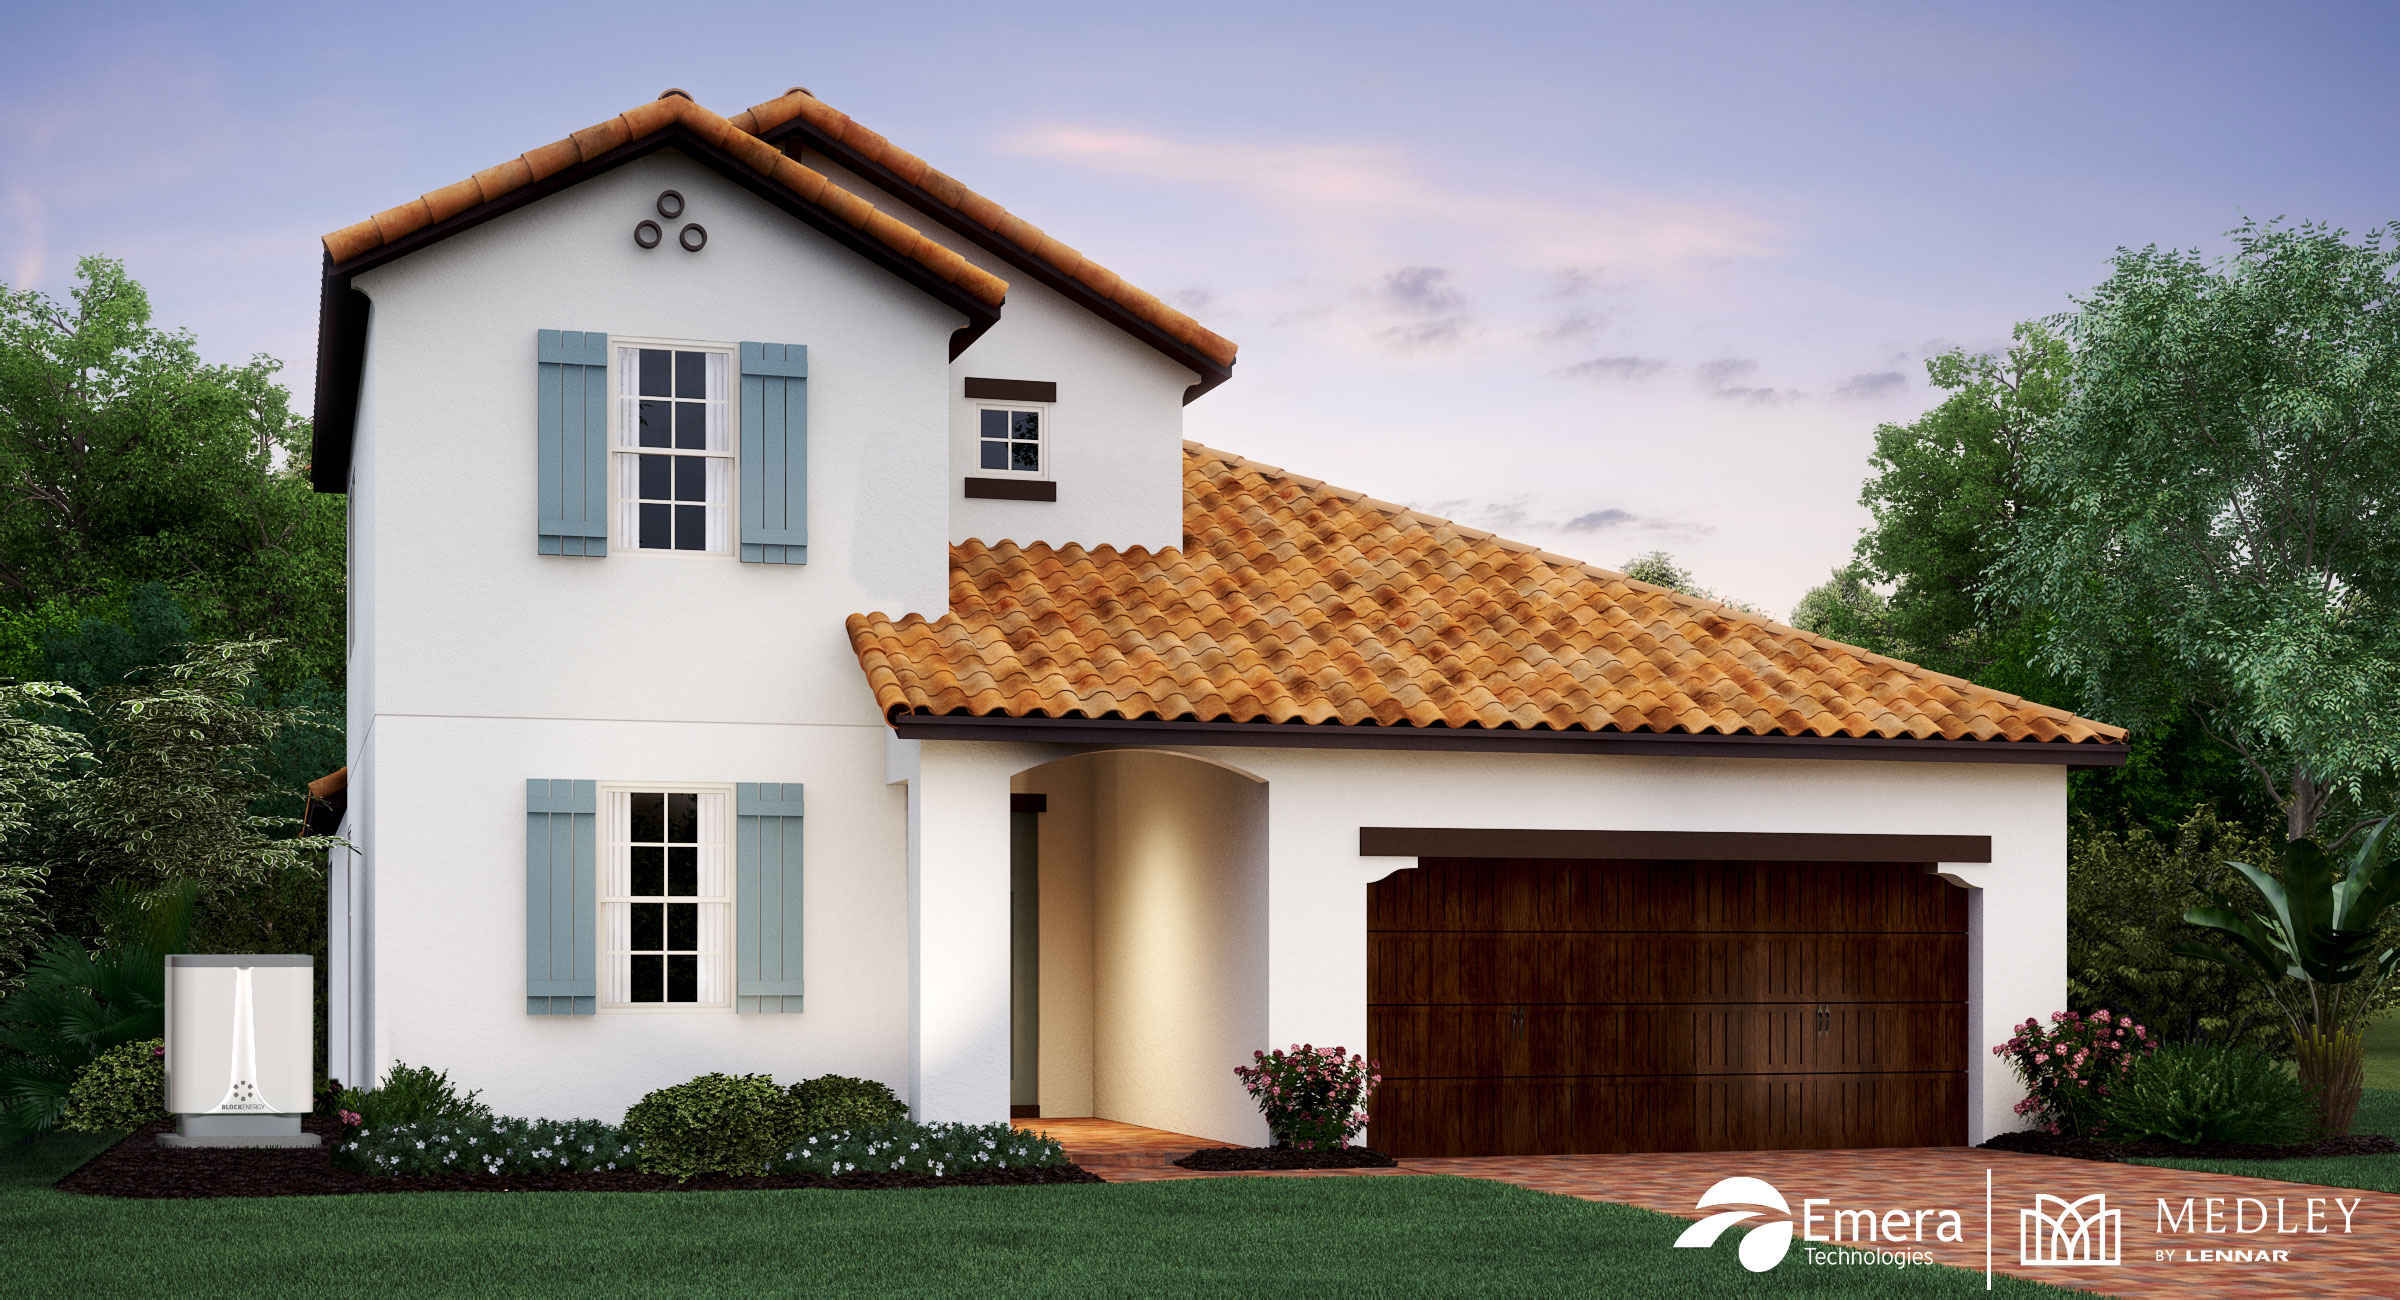 Lennar Medley Model Home with BlockEnergy